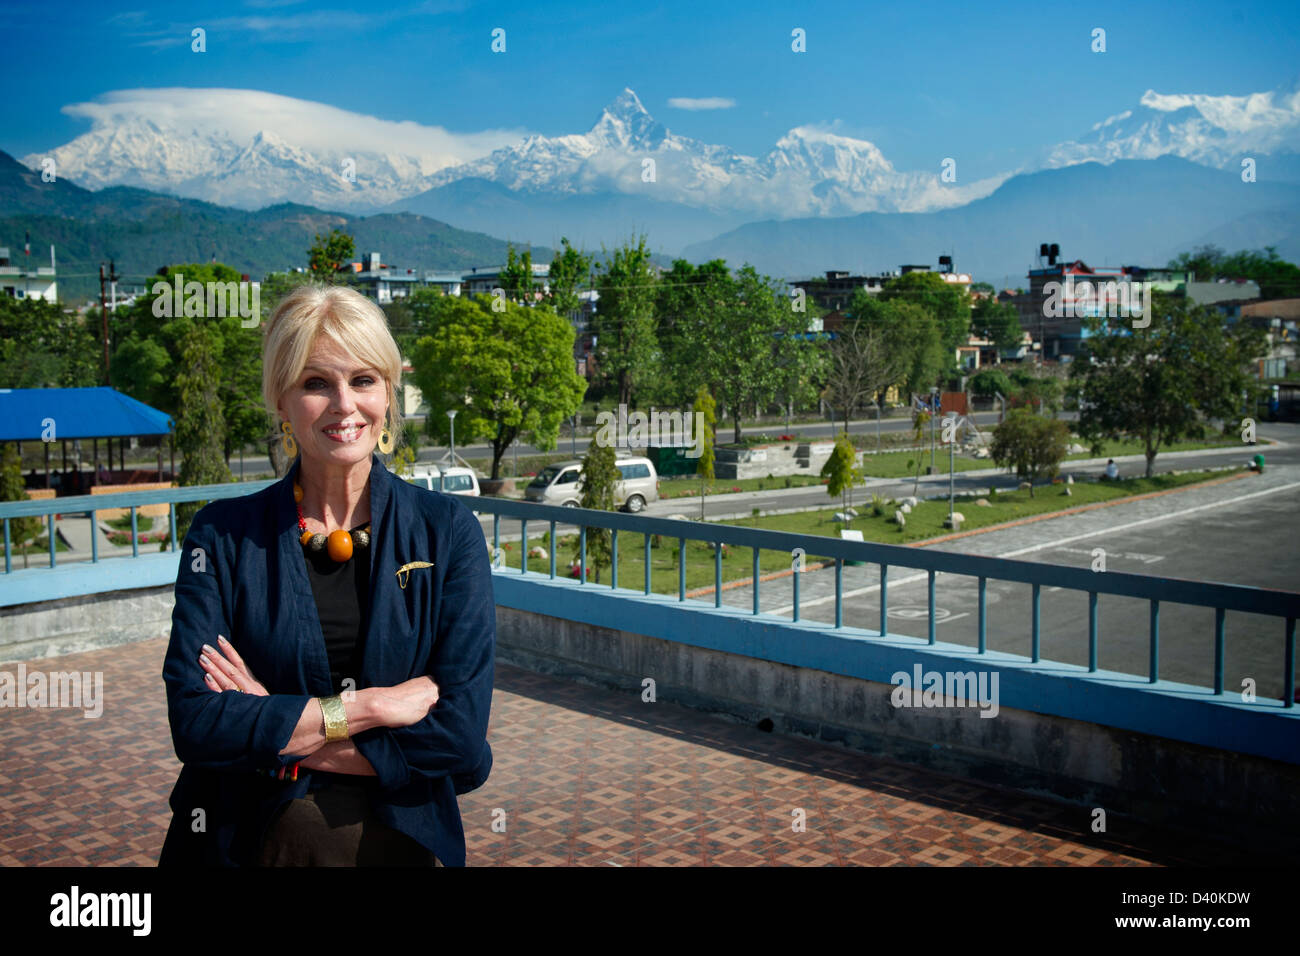 Joanna Lumley at Pokhara Airport, with Annapurna mountains behind - Stock Image